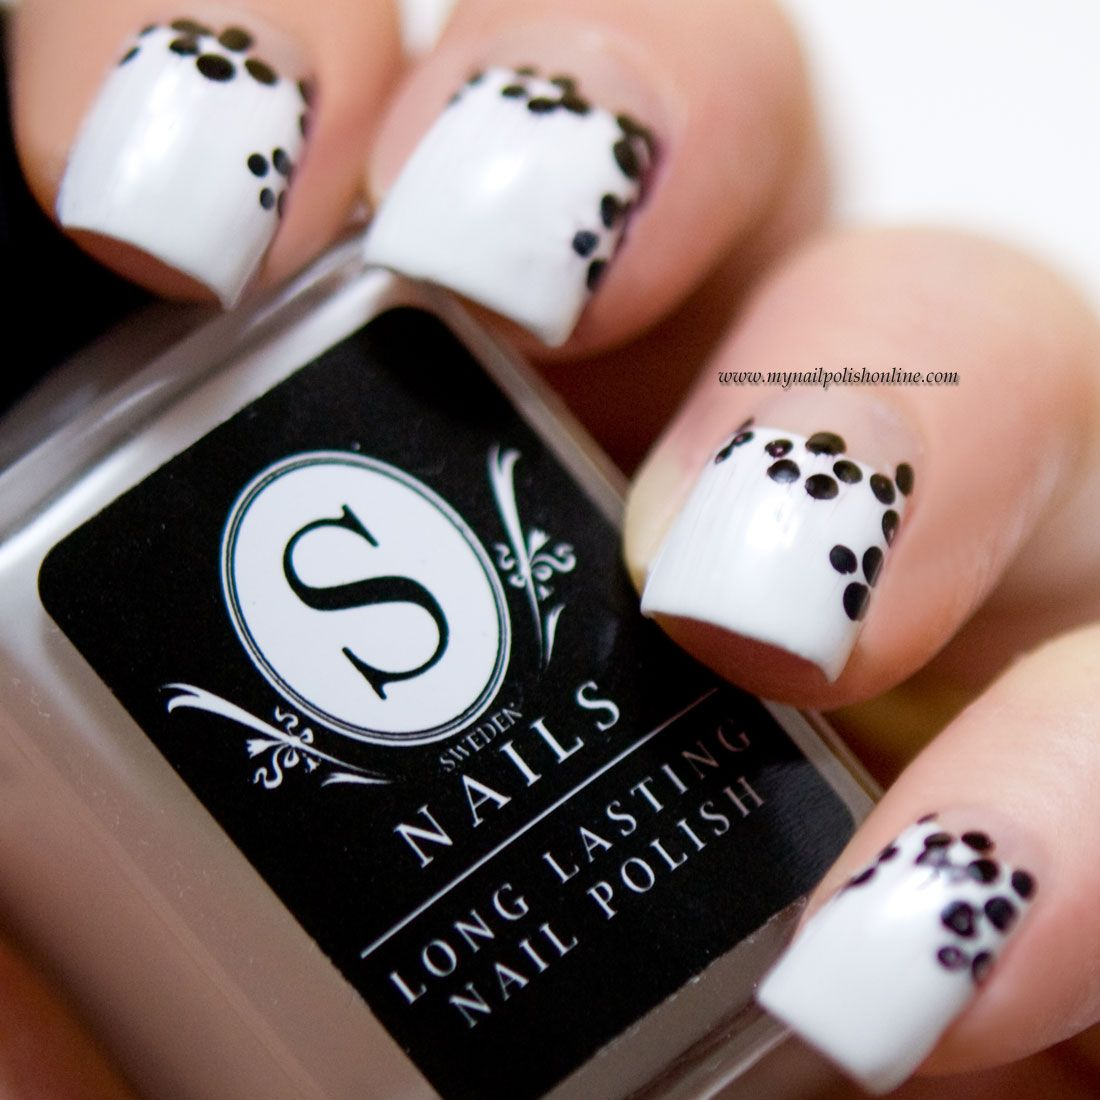 31DC2016 - B&W Nails | Nail polish online, White manicure and ...